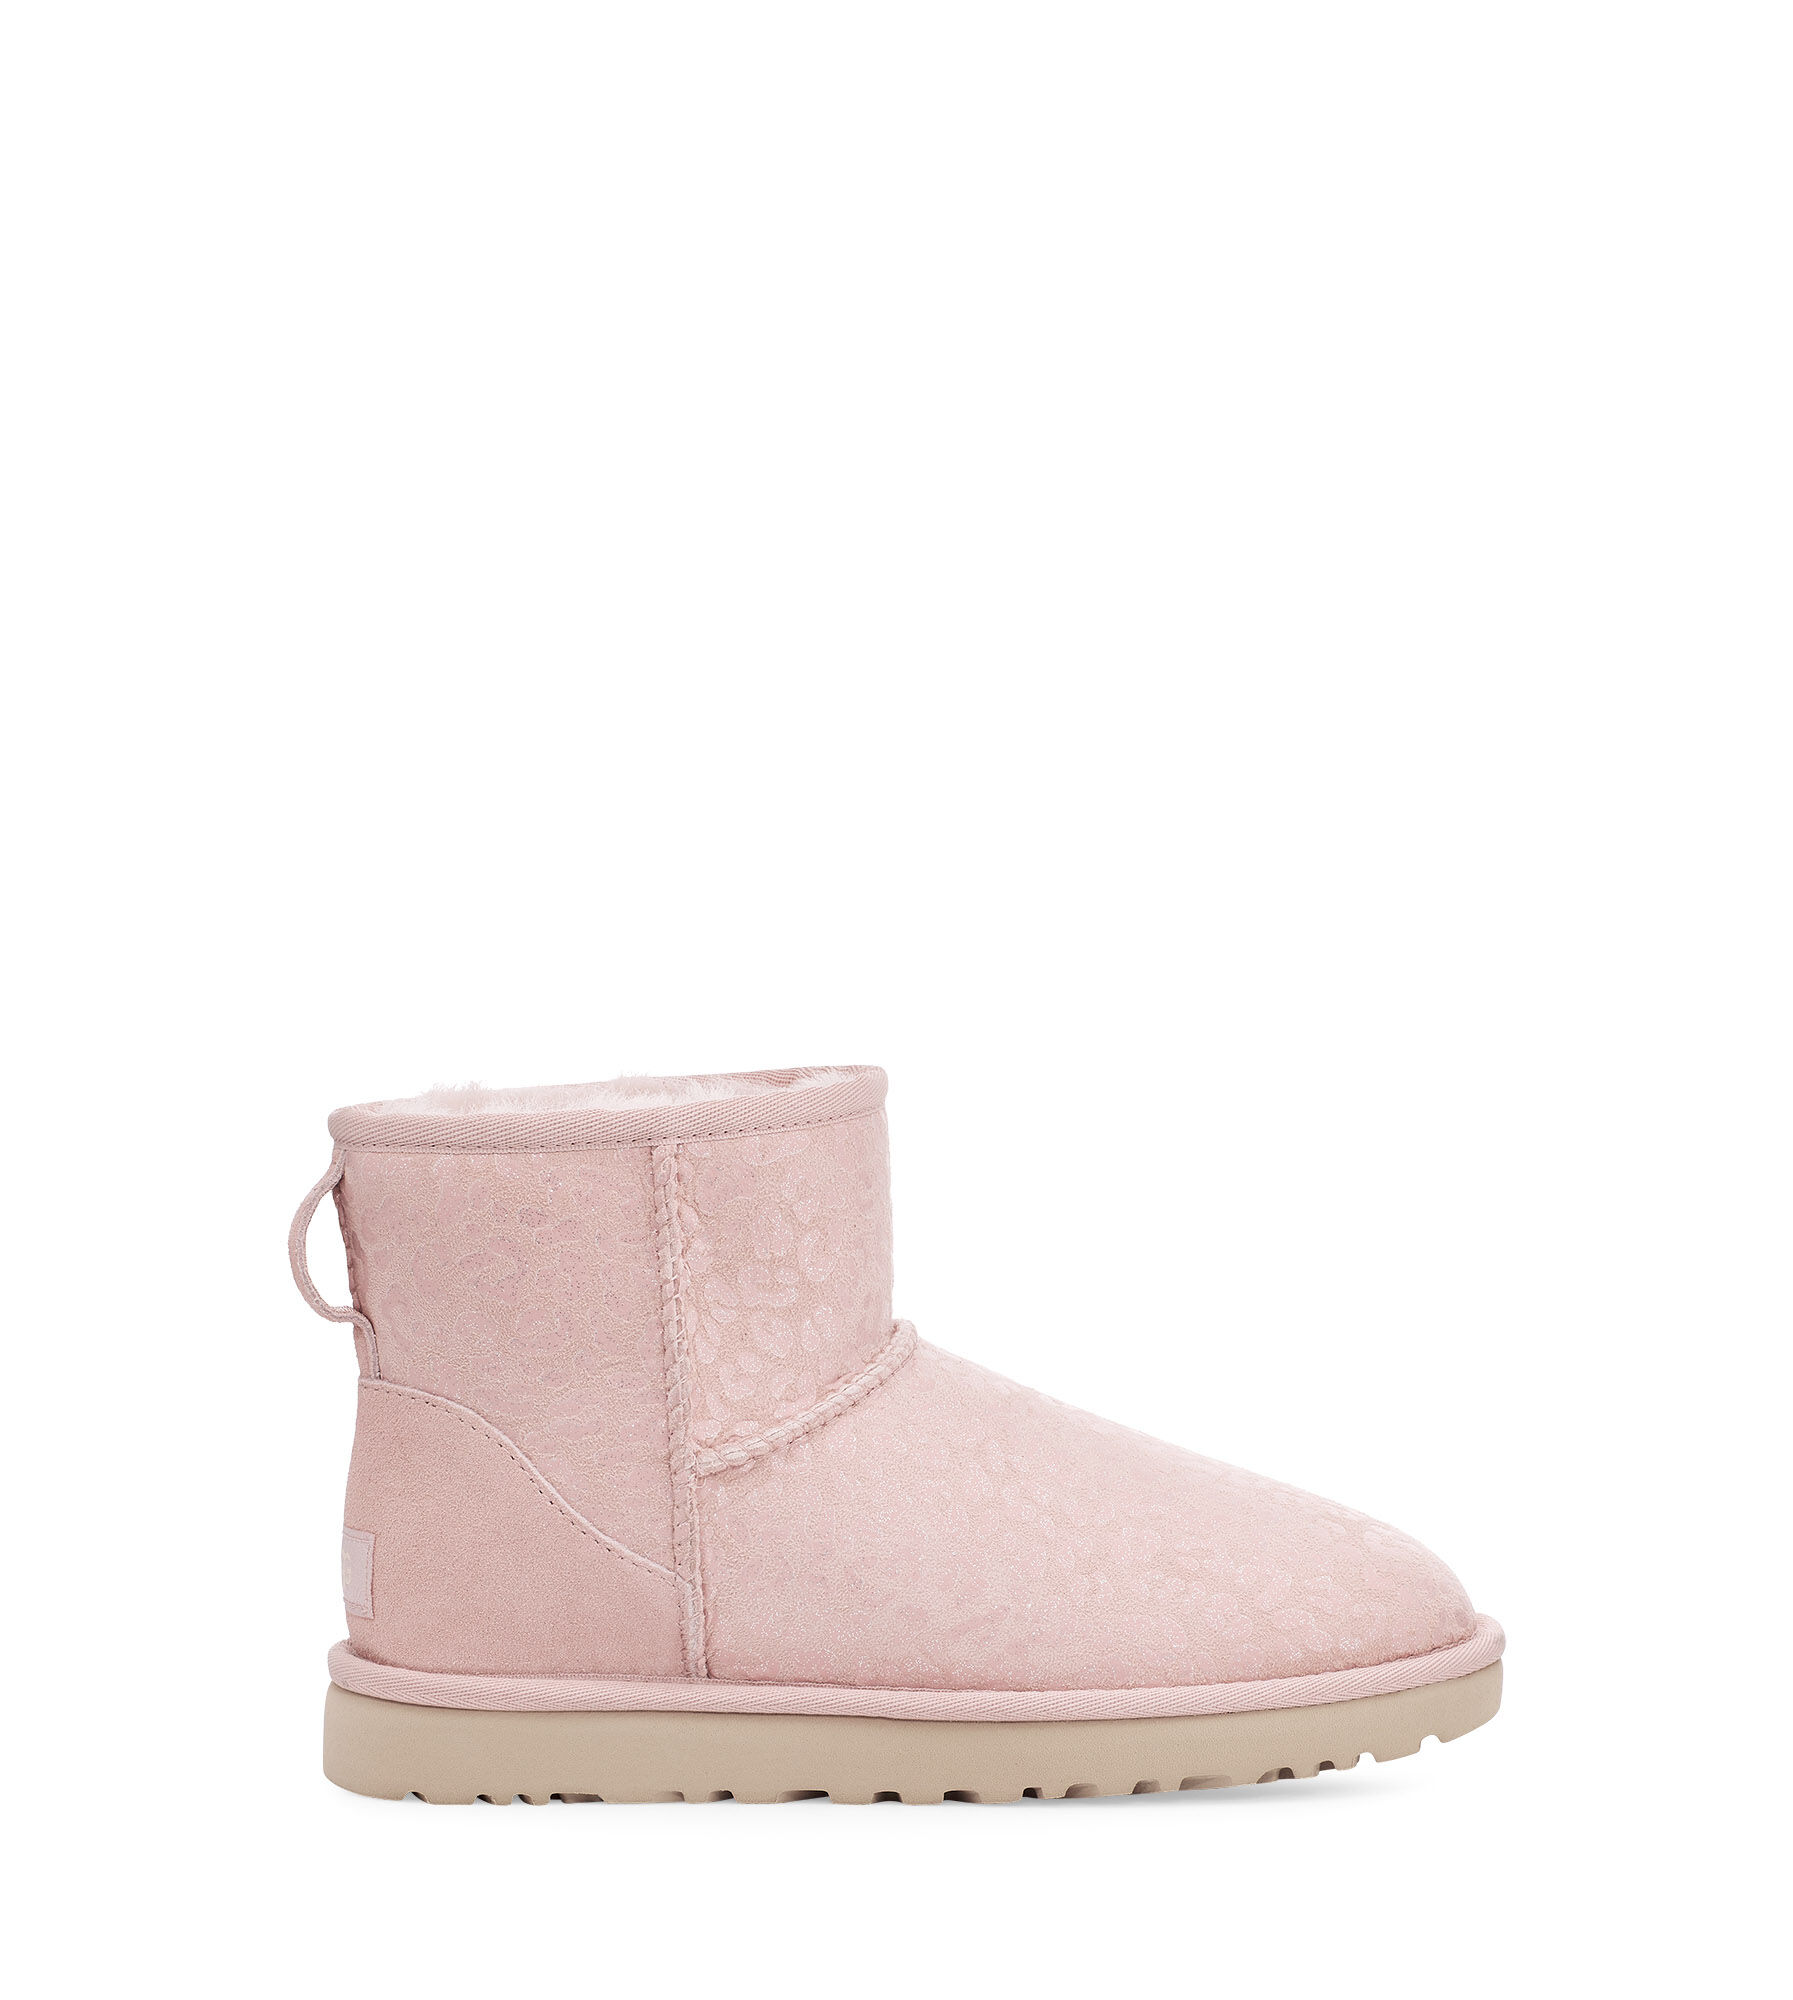 Women's Pink Classic Boots   UGG